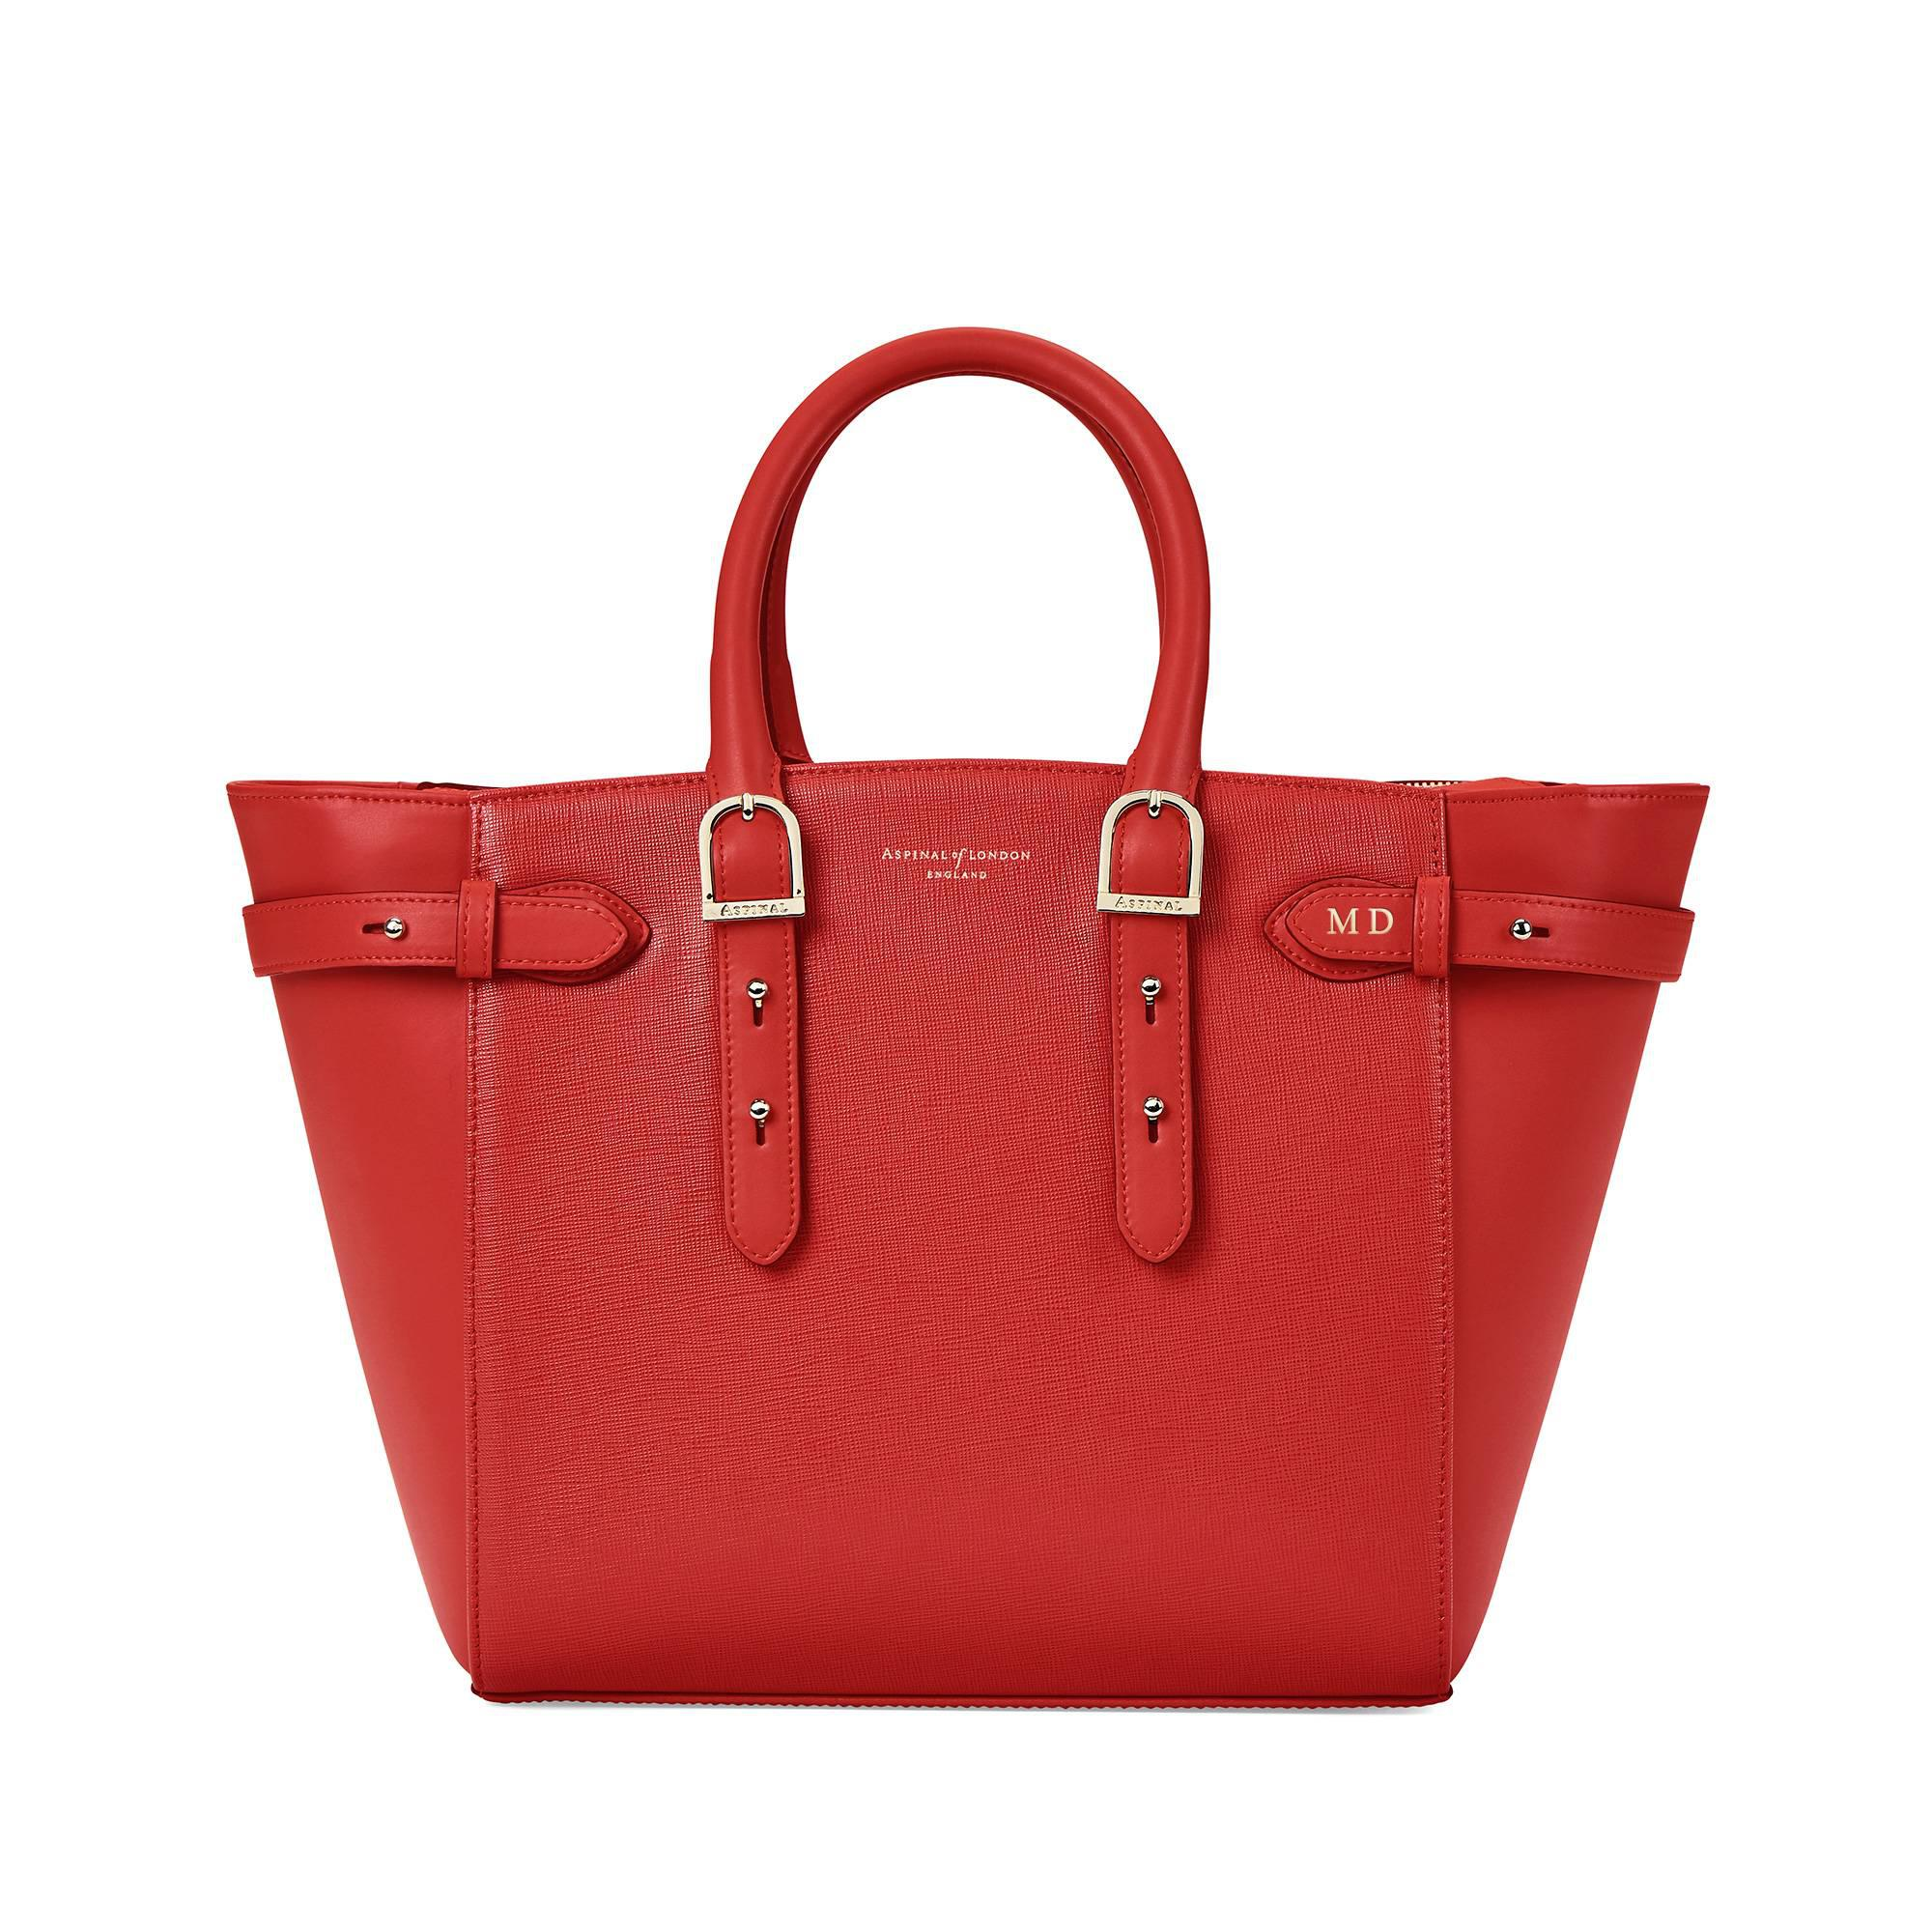 Aspinal of London Leather The Midi Marylebone Tech Tote in Scarlet (Red)